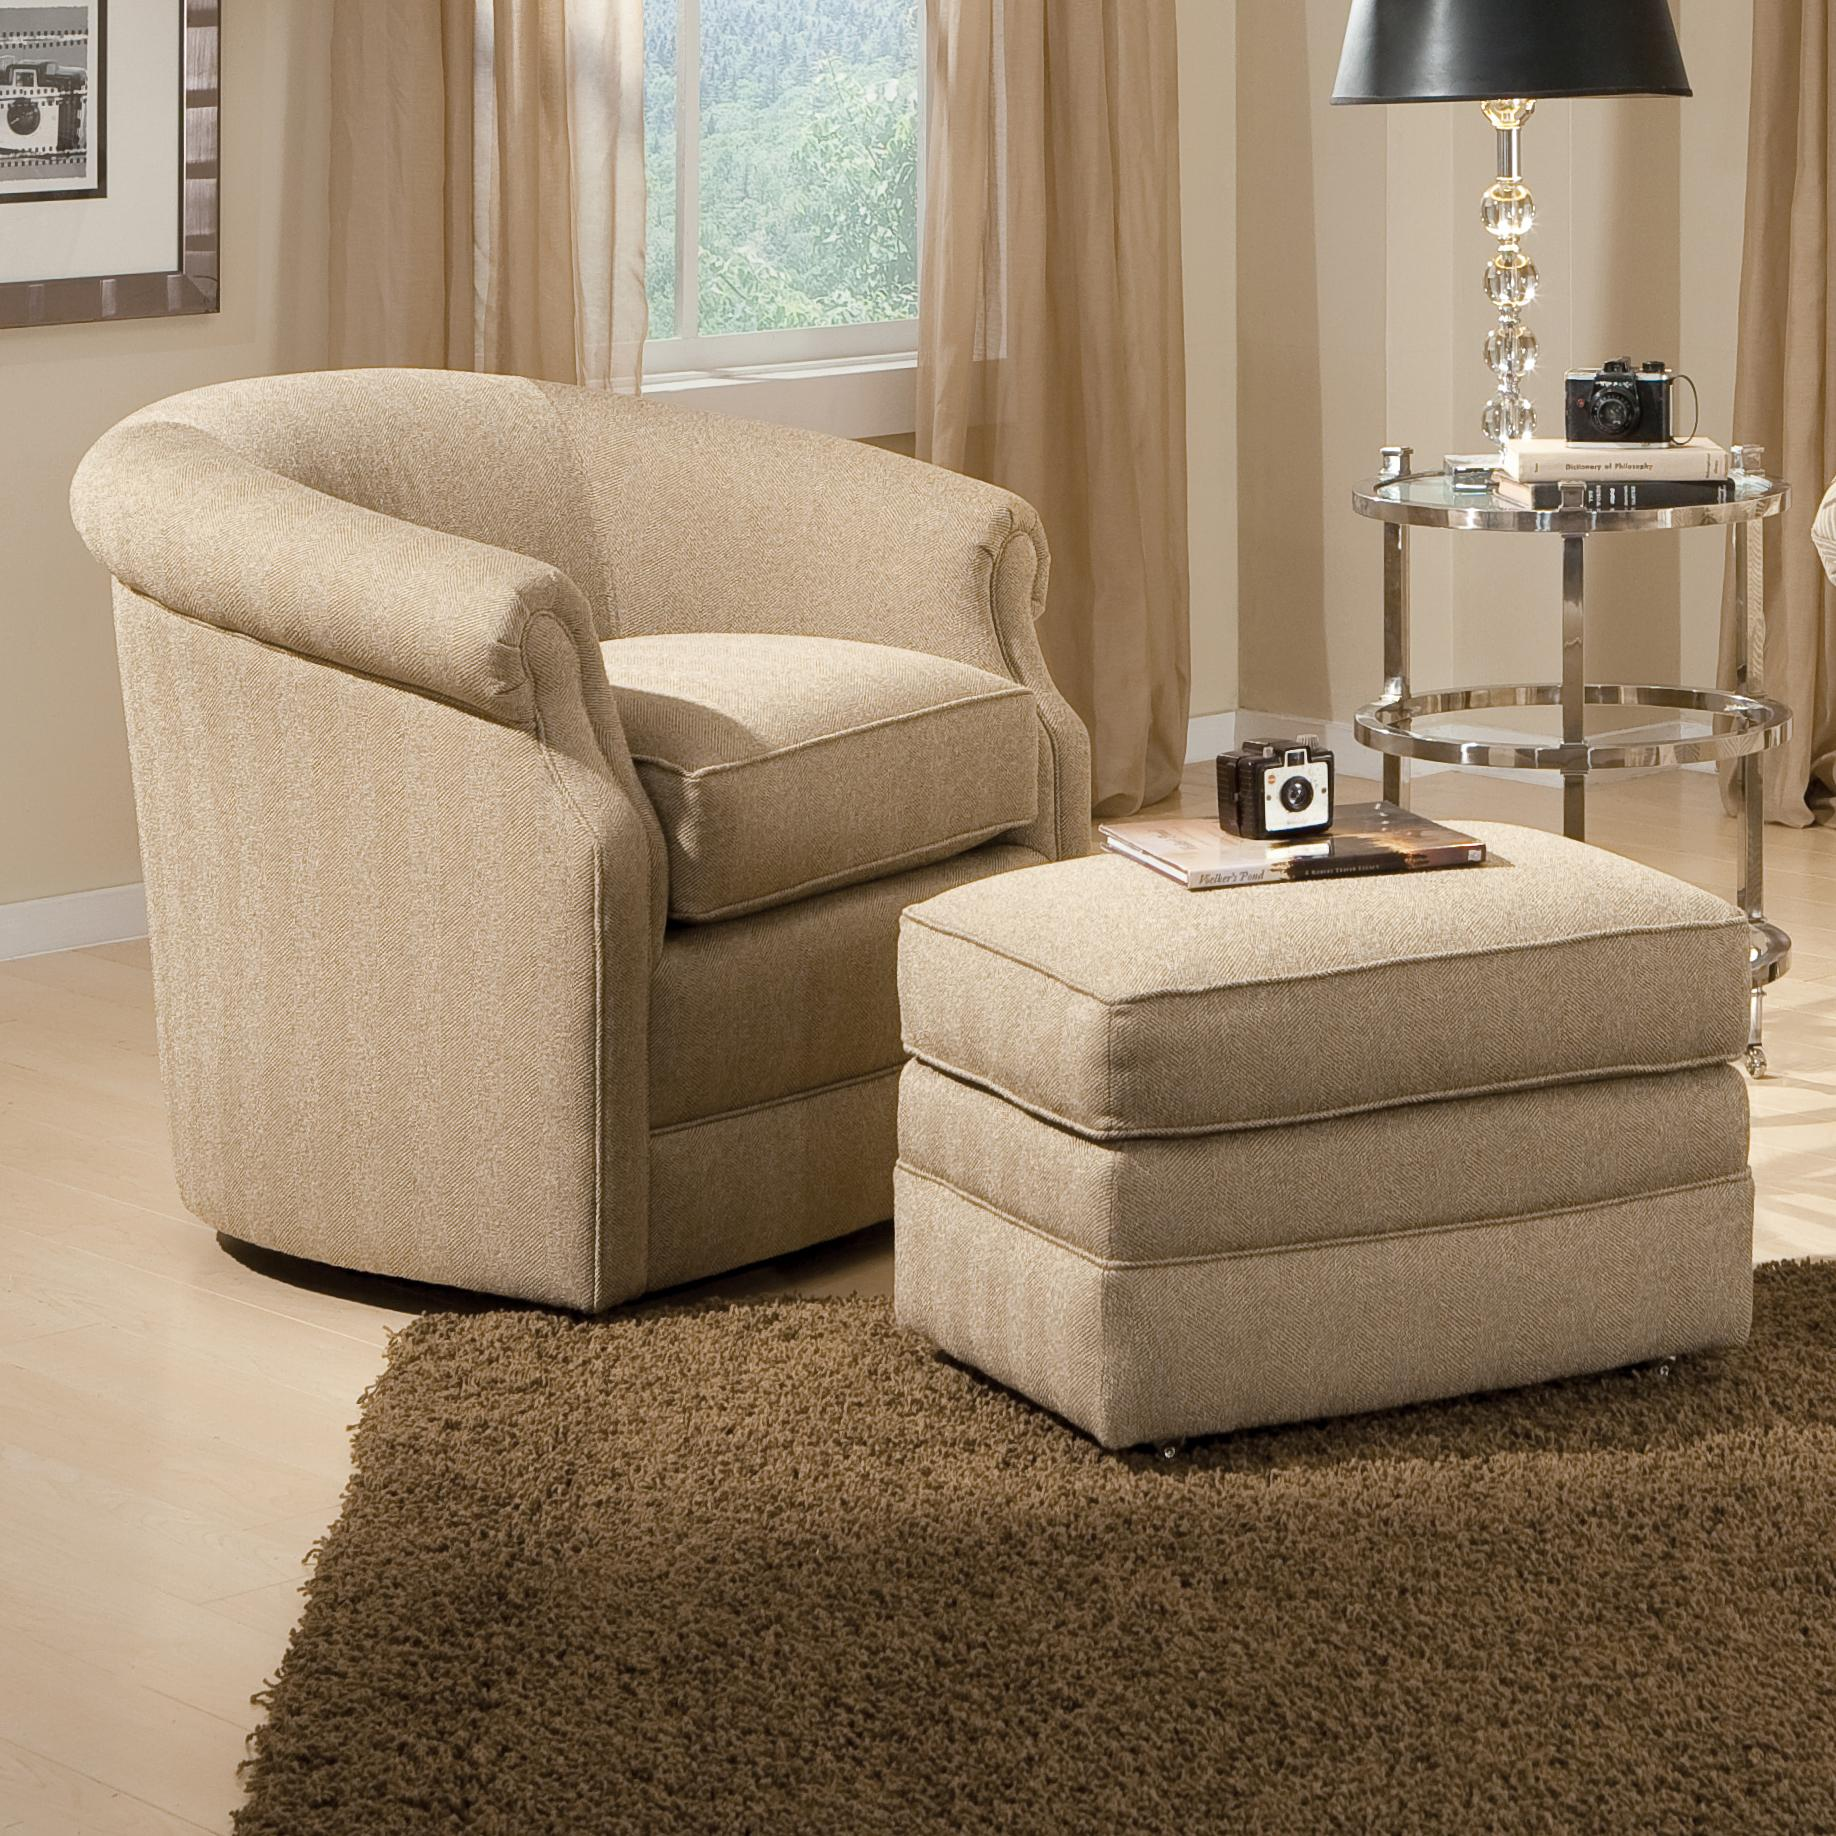 Barrel Swivel Chair And Ottoman With Casters Part 63